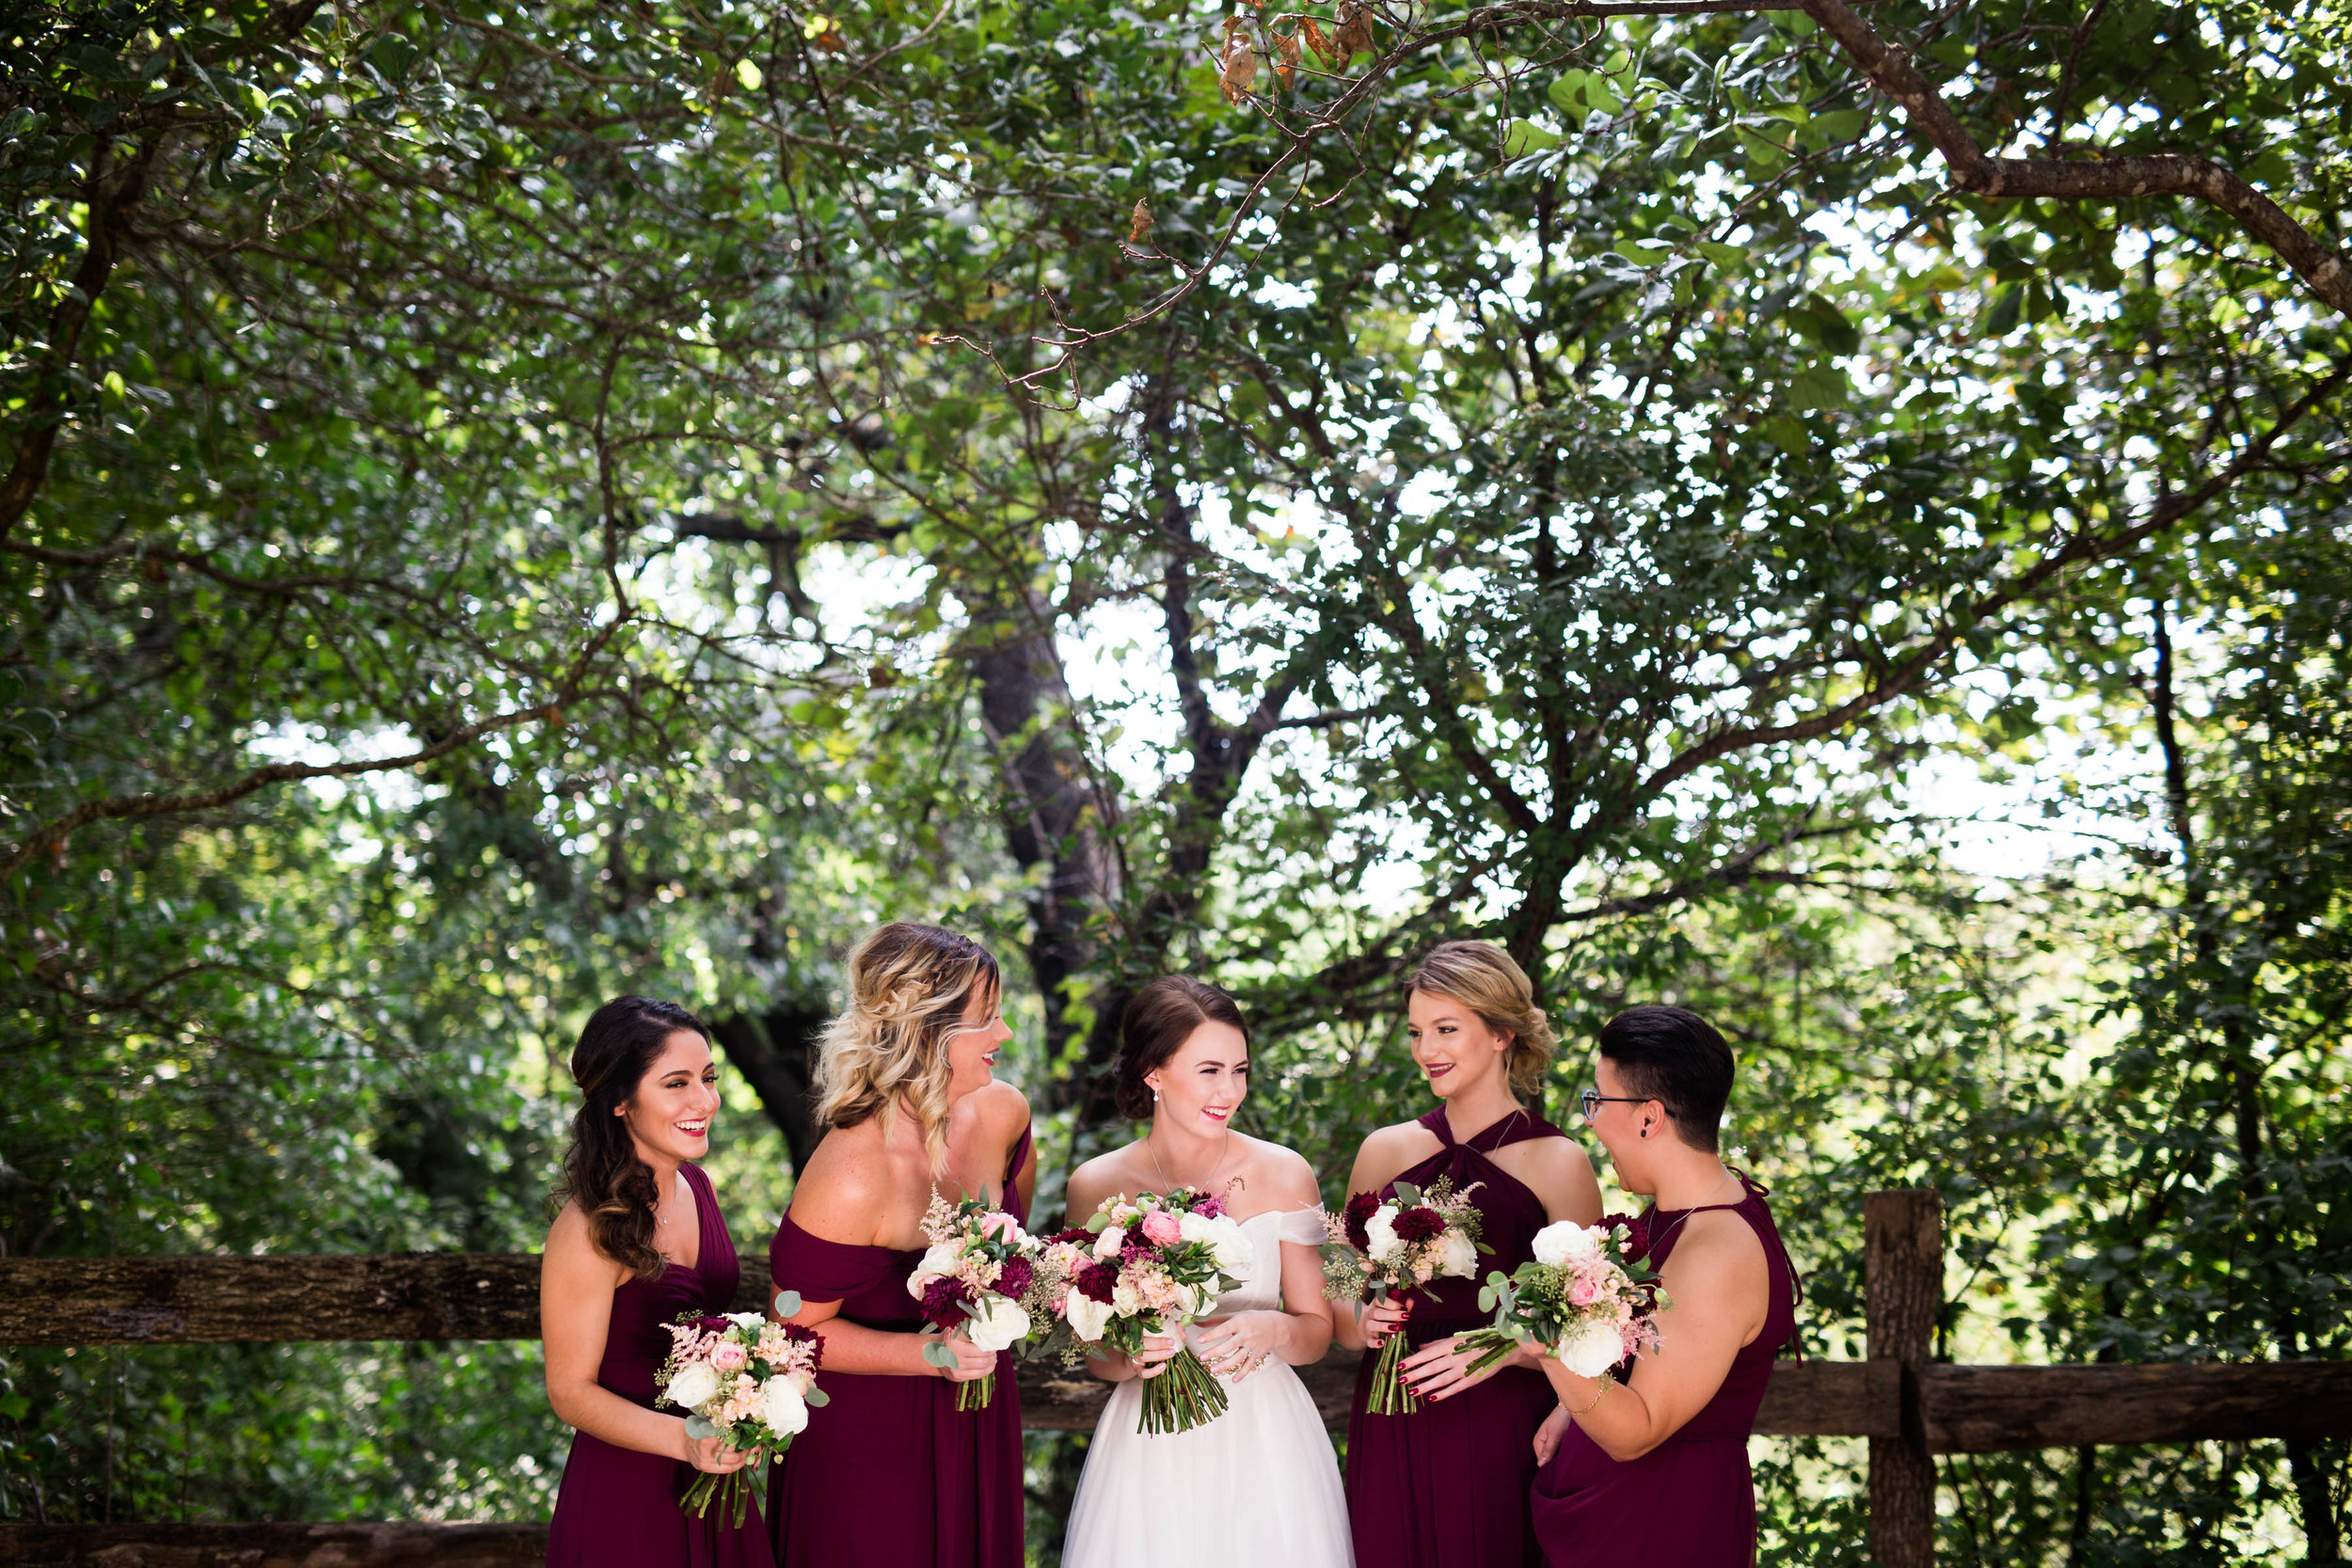 wedding photographer norman oklahoma modern southwind hills enchanted forest